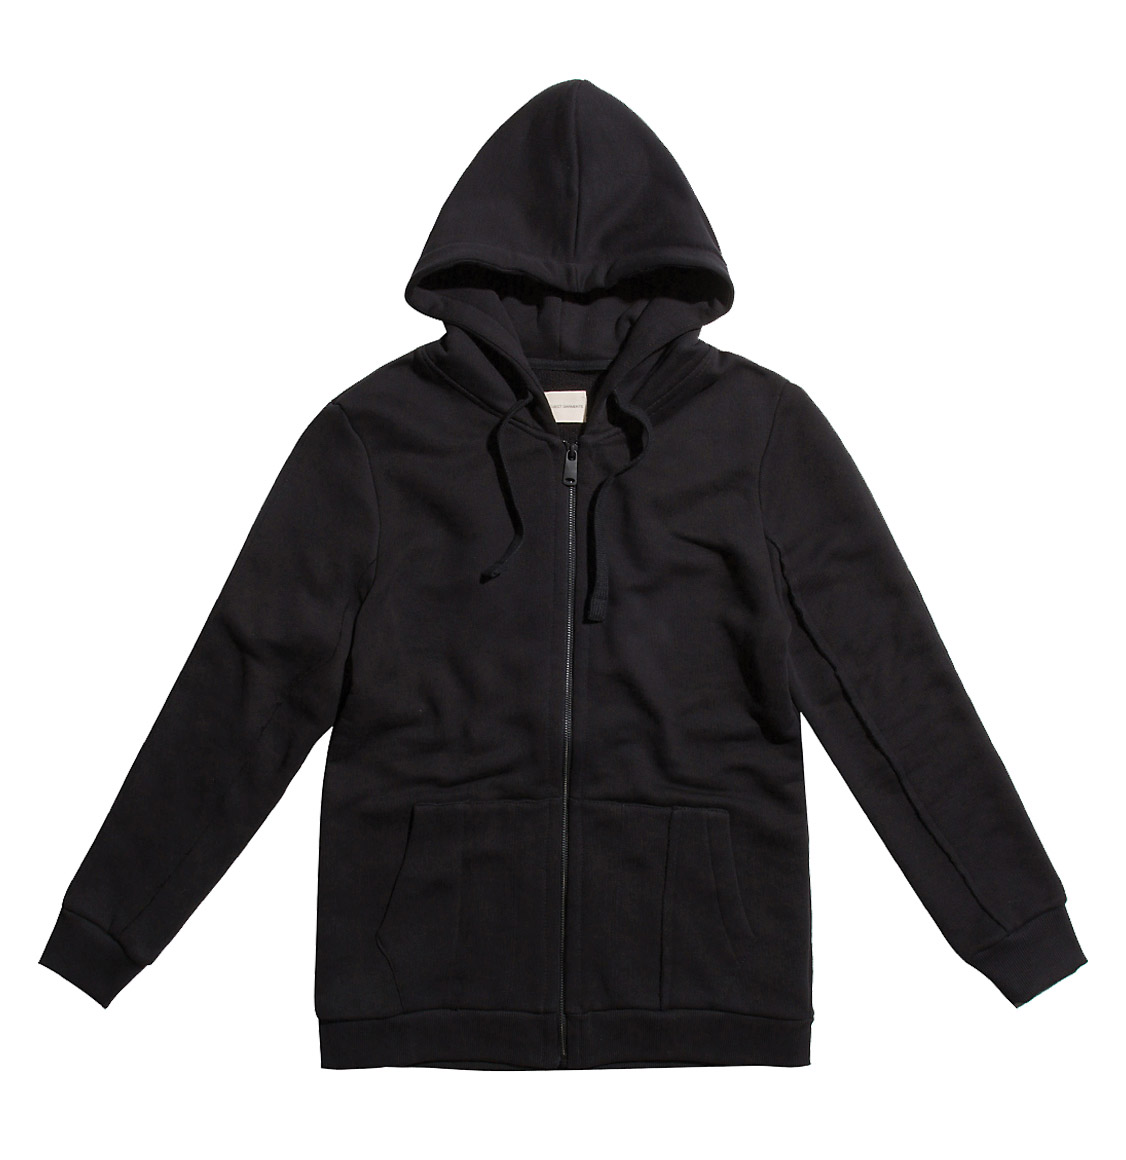 The Project Garments Loopback Cotton-Jersey Zip-Up Hoodie Black